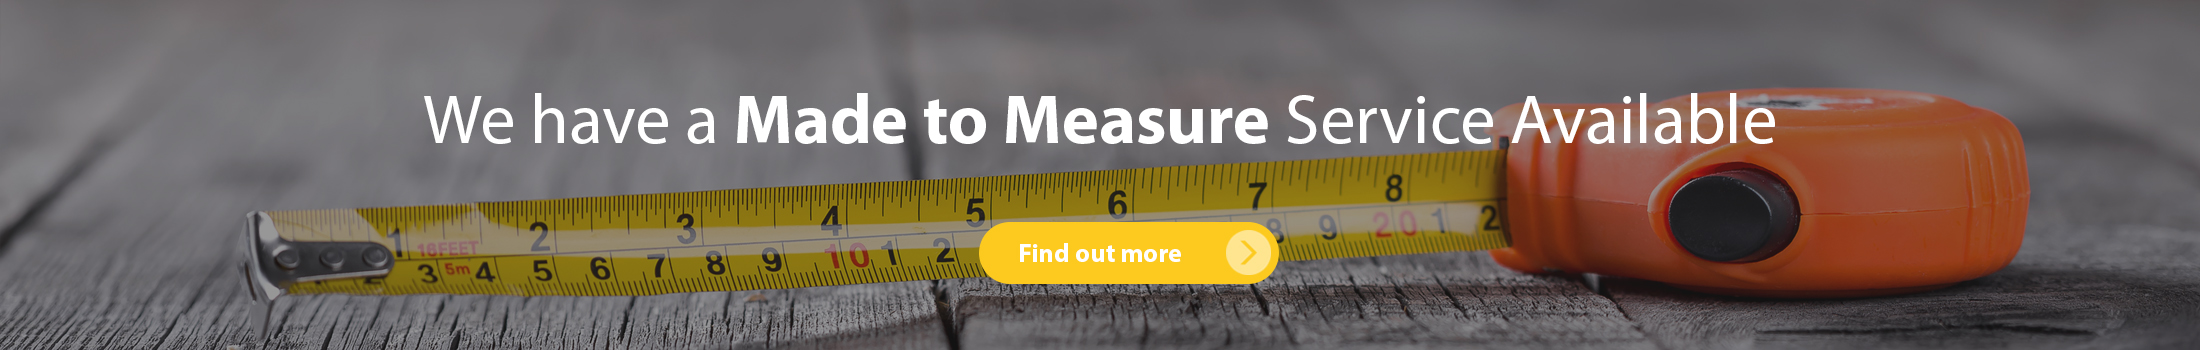 We have a made to measure service available - Click here to find out more details